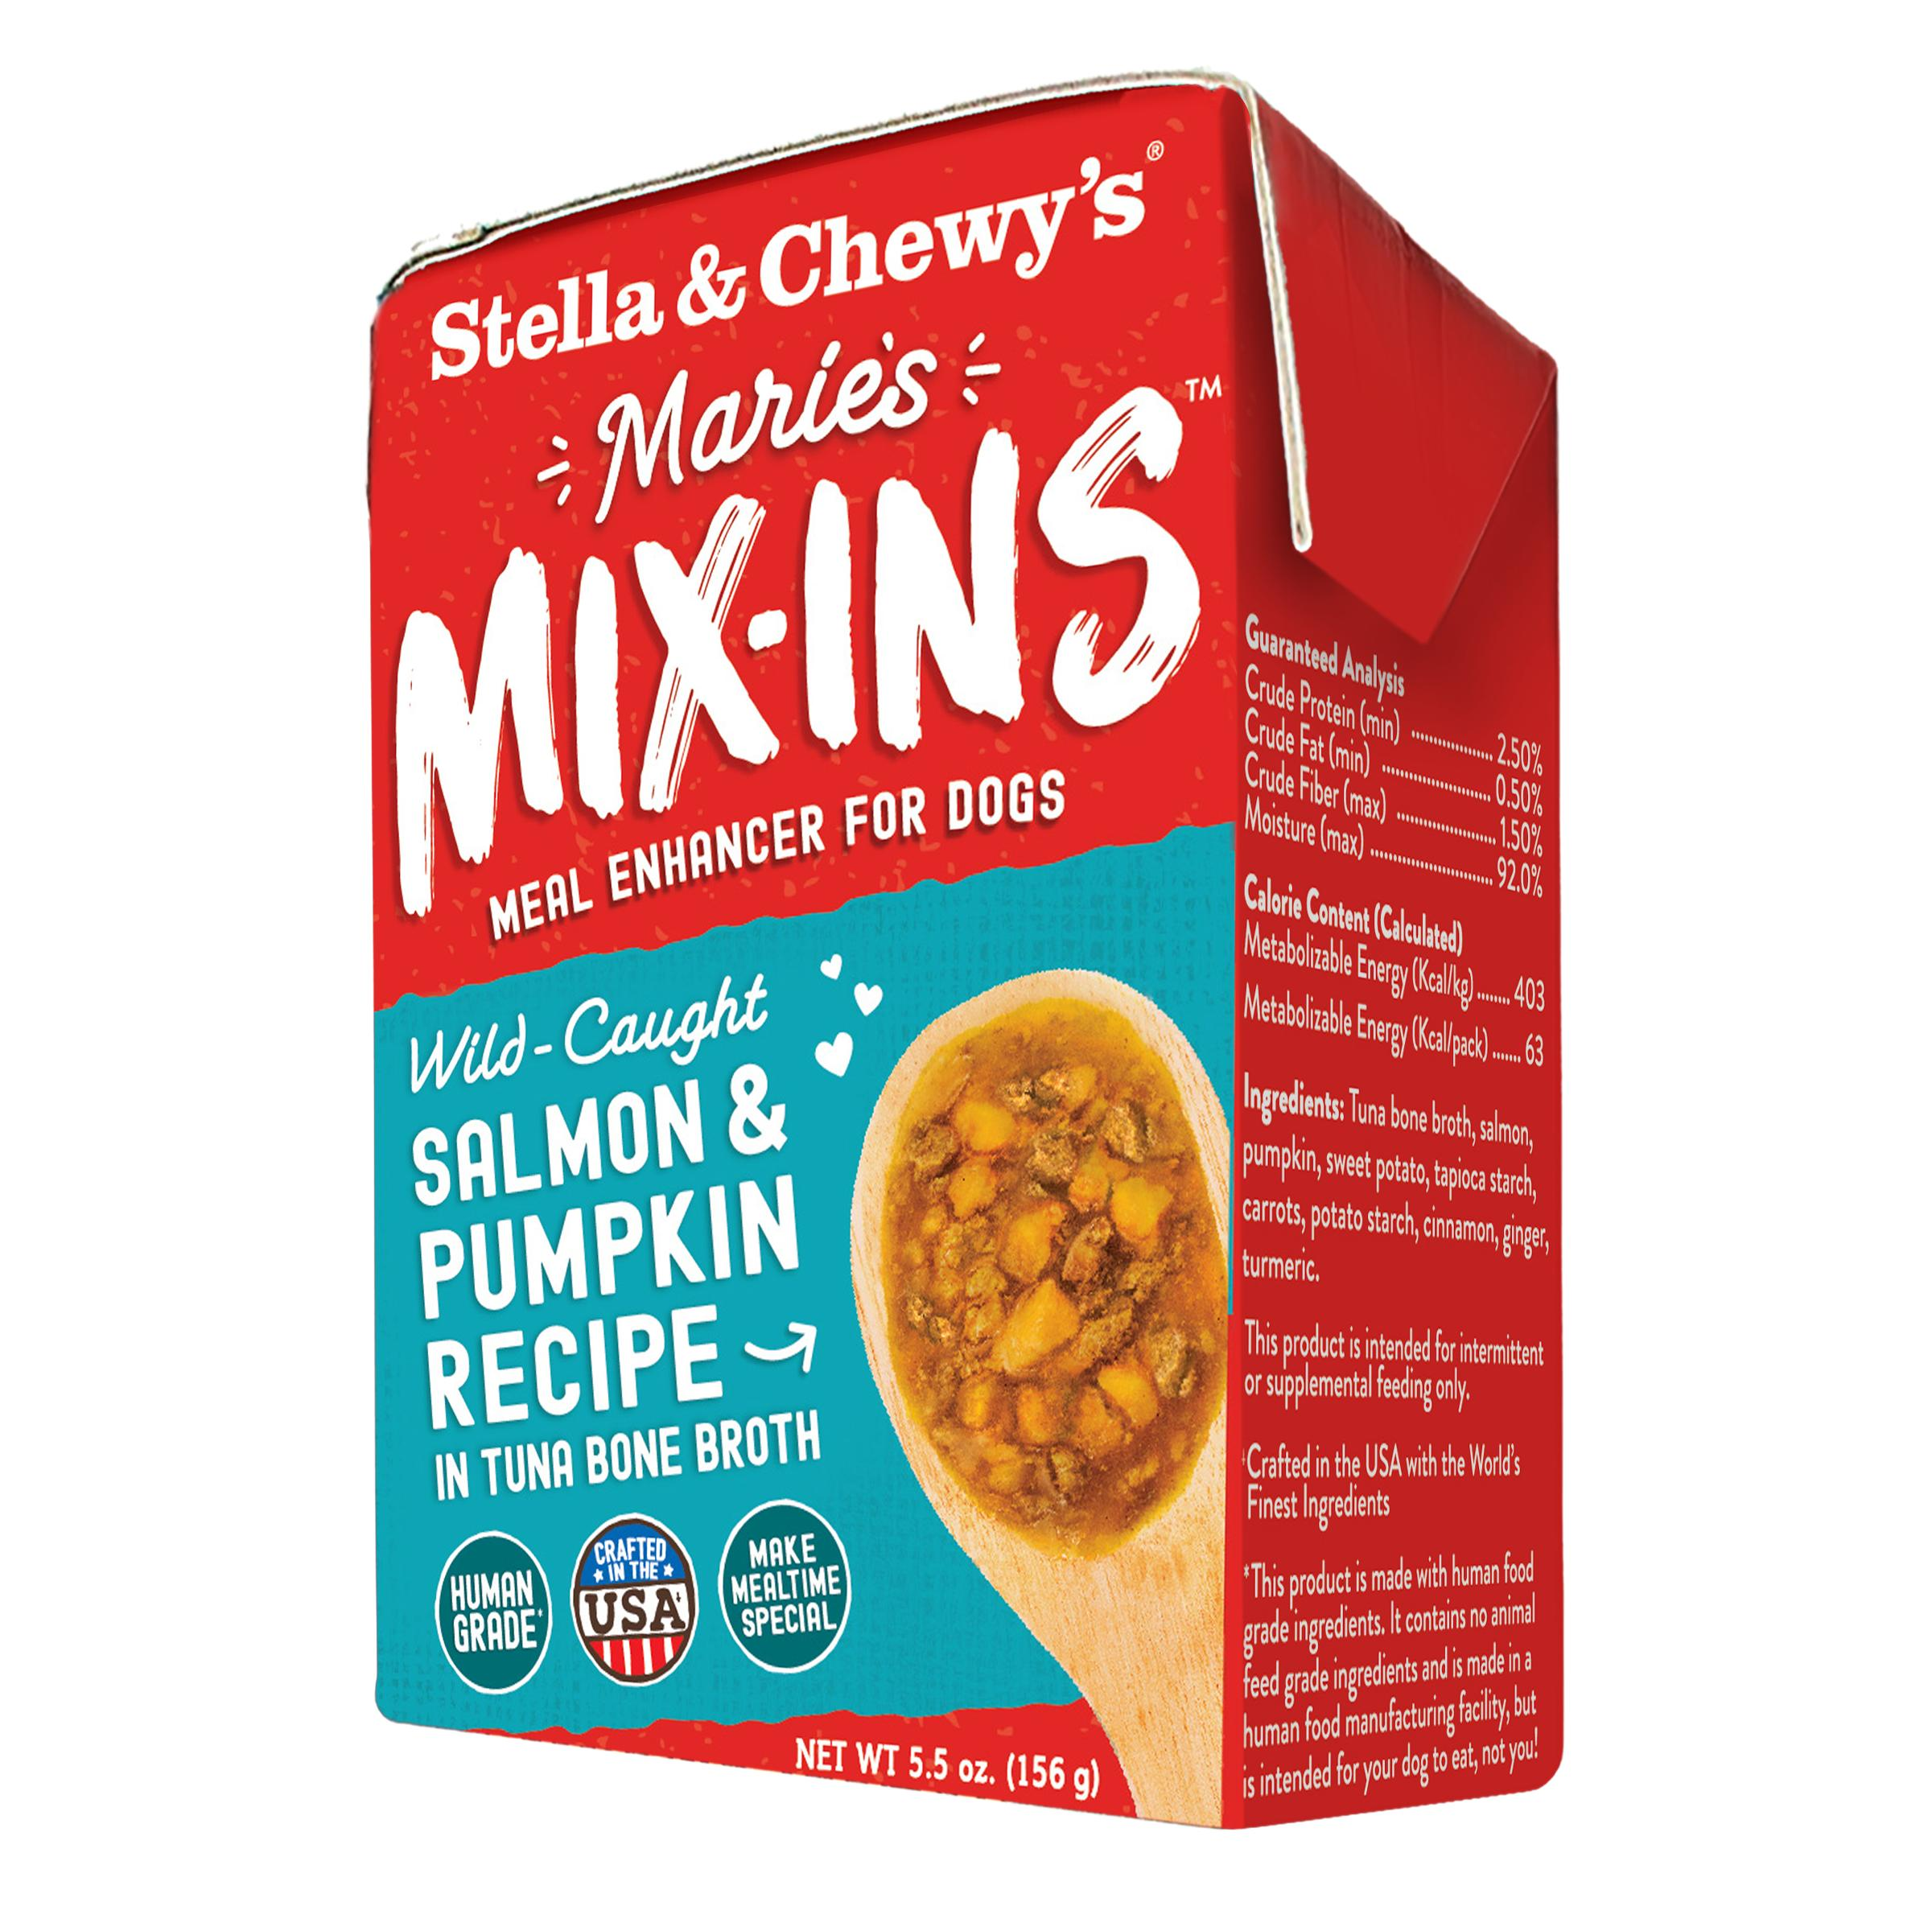 Stella & Chewy's Marie's Mix-Ins Salmon & Pumpkin Recipe Meal Enhancer for Dogs Image